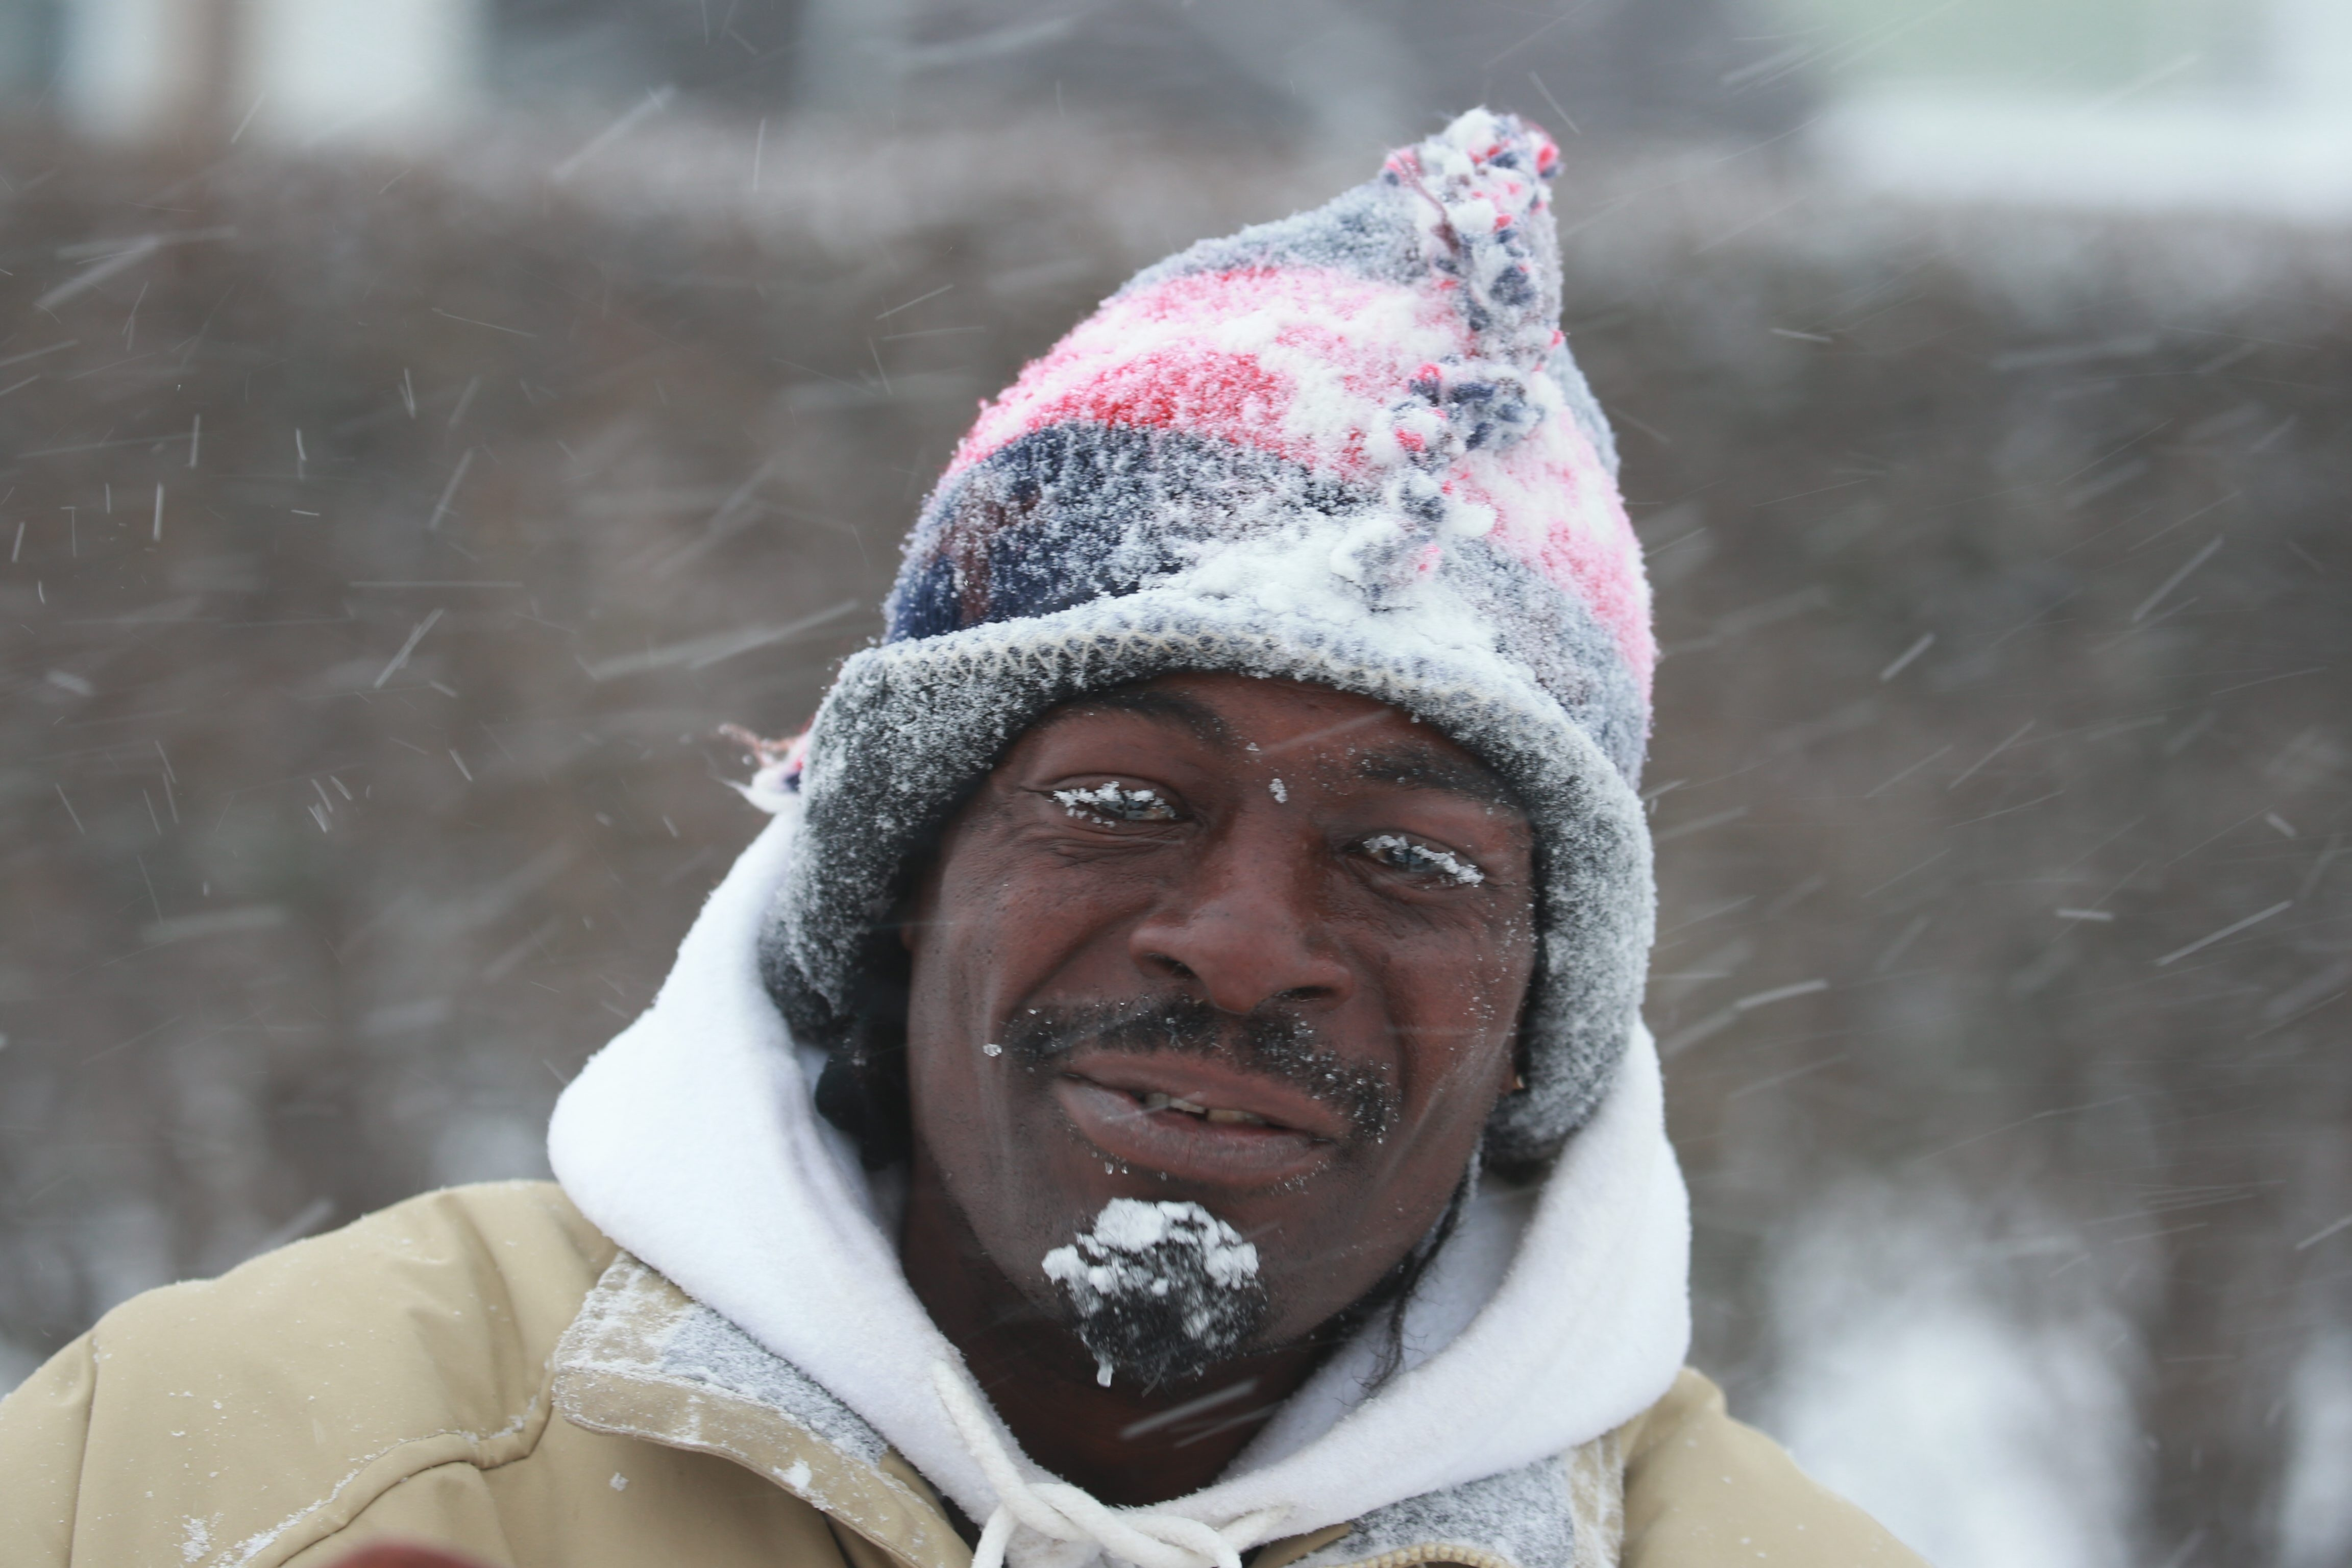 Bryan Allen is snow-covered on his way home off Walden Avenue on Friday, Feb. 12, 2016. (John Hickey/Buffalo News)